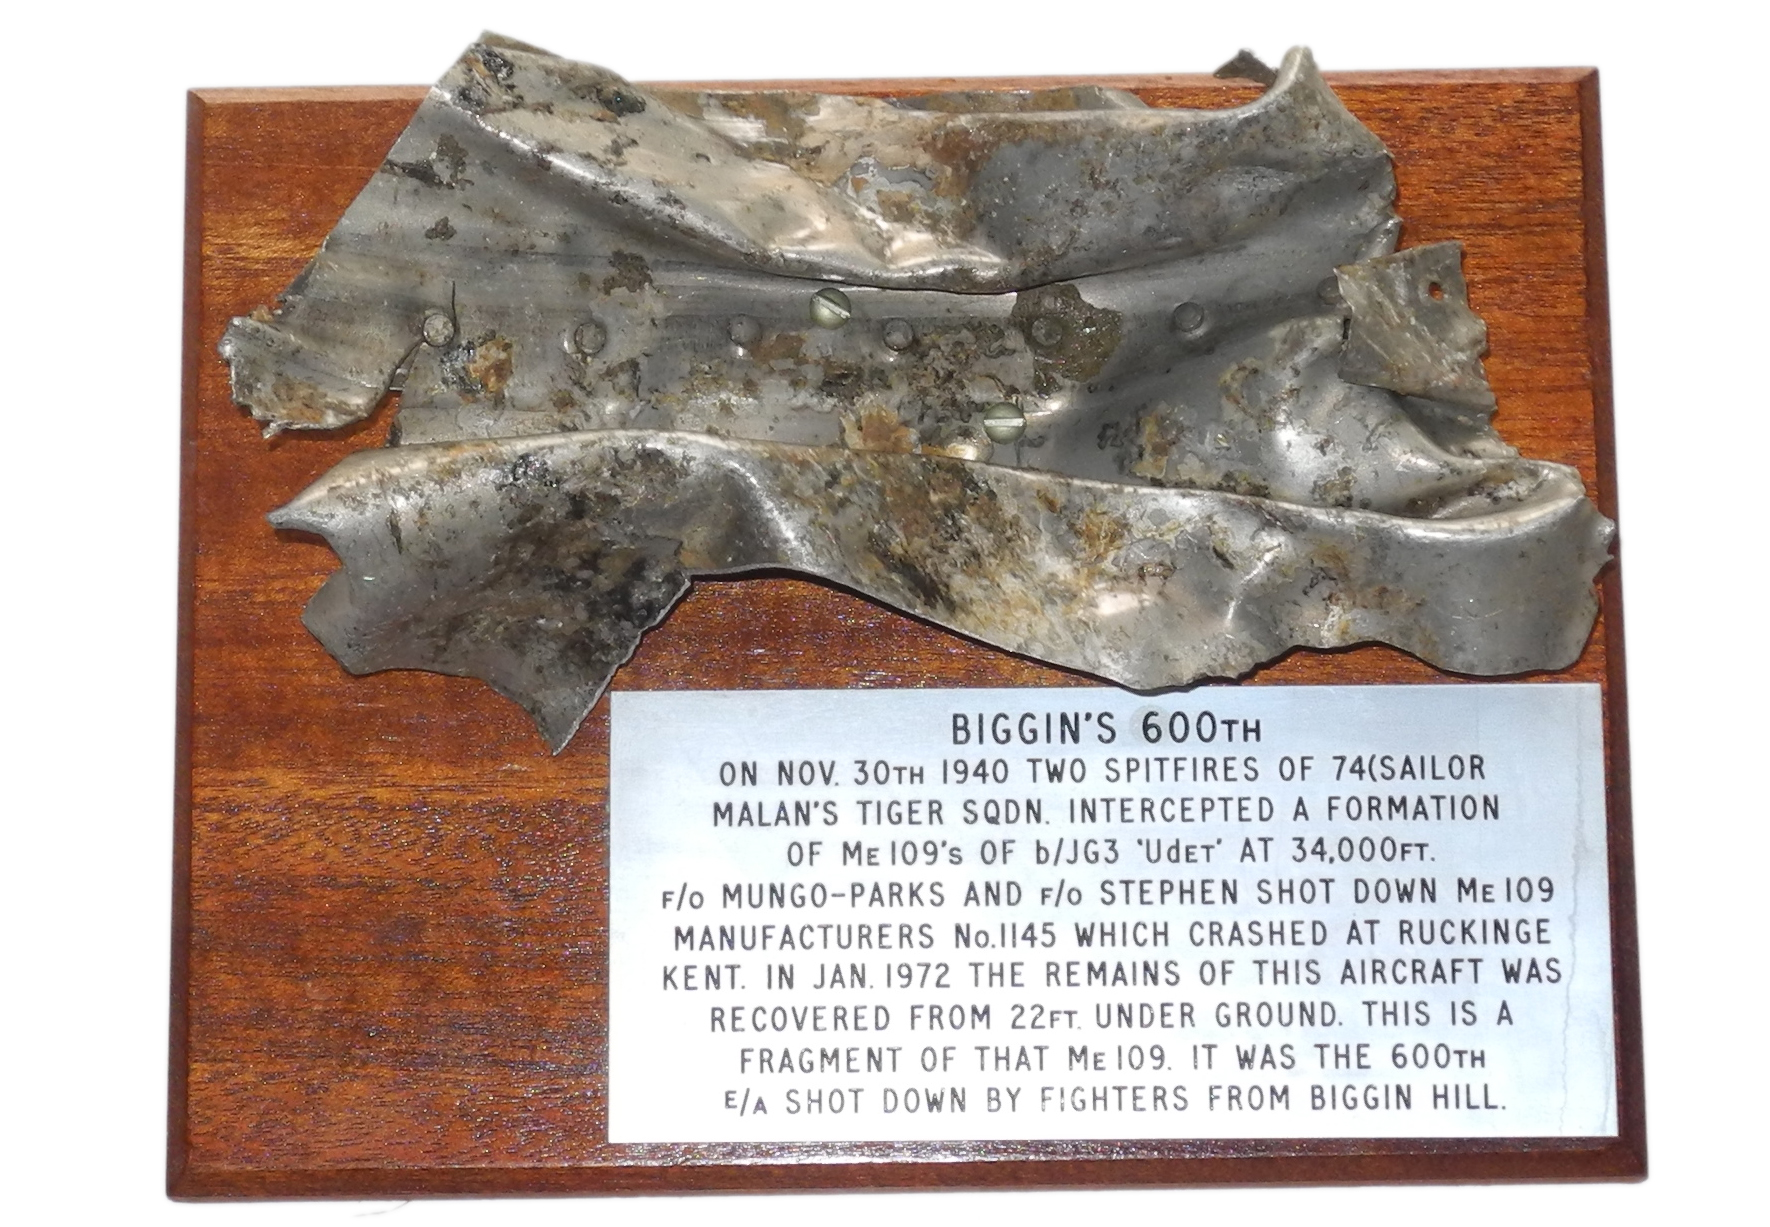 RAF Biggin Hill 600th kill relic